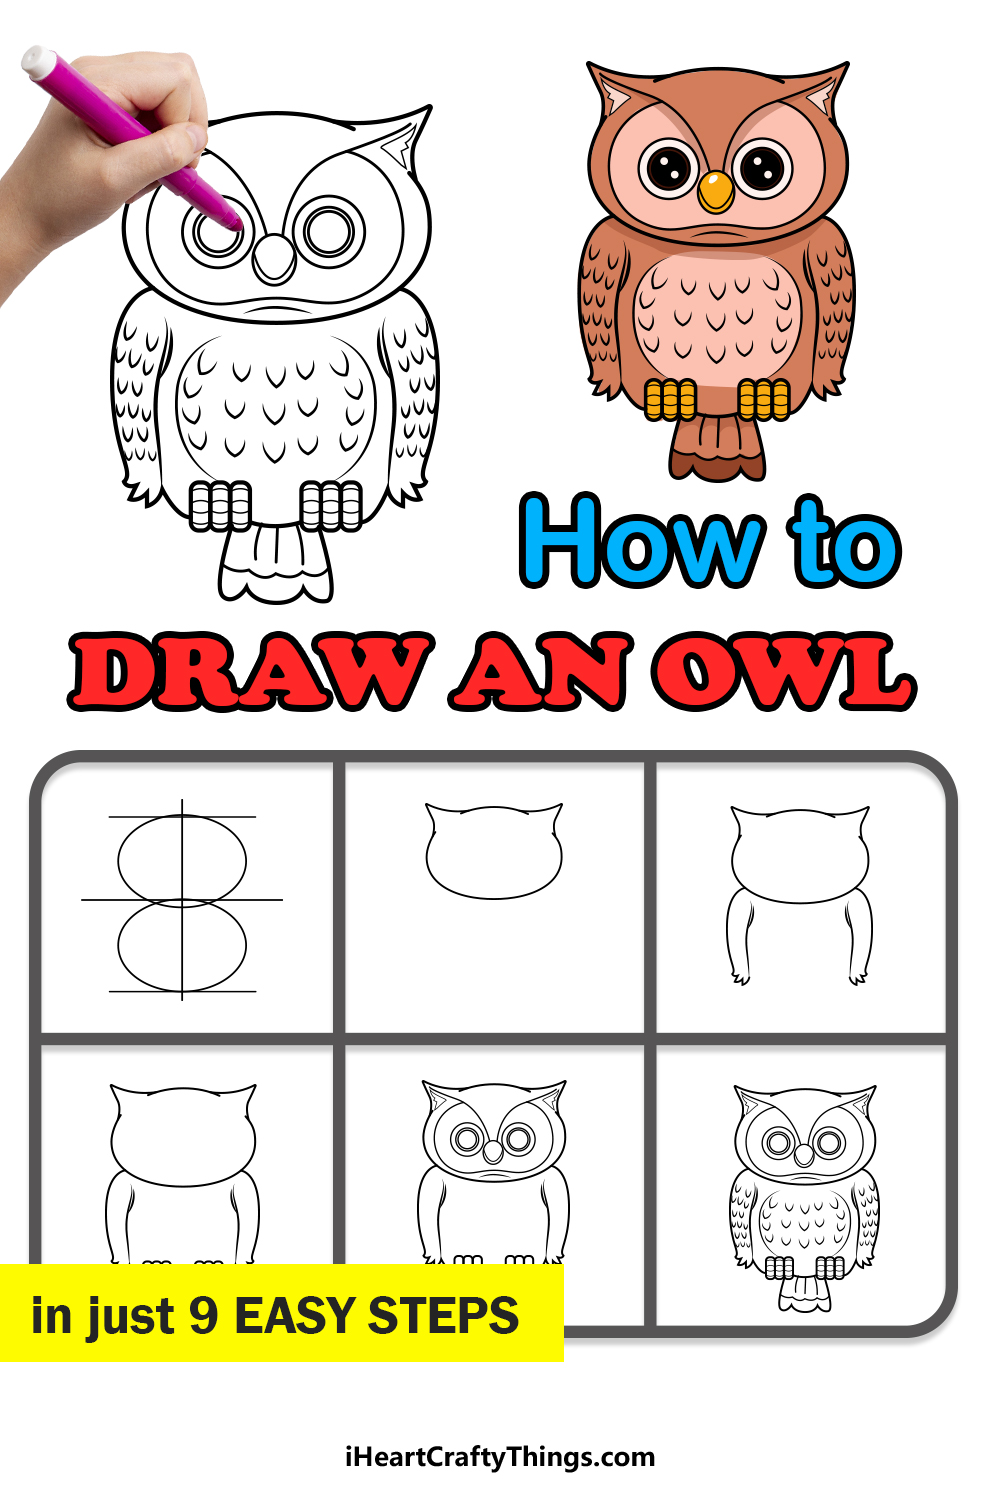 how to draw an owl in 9 easy steps